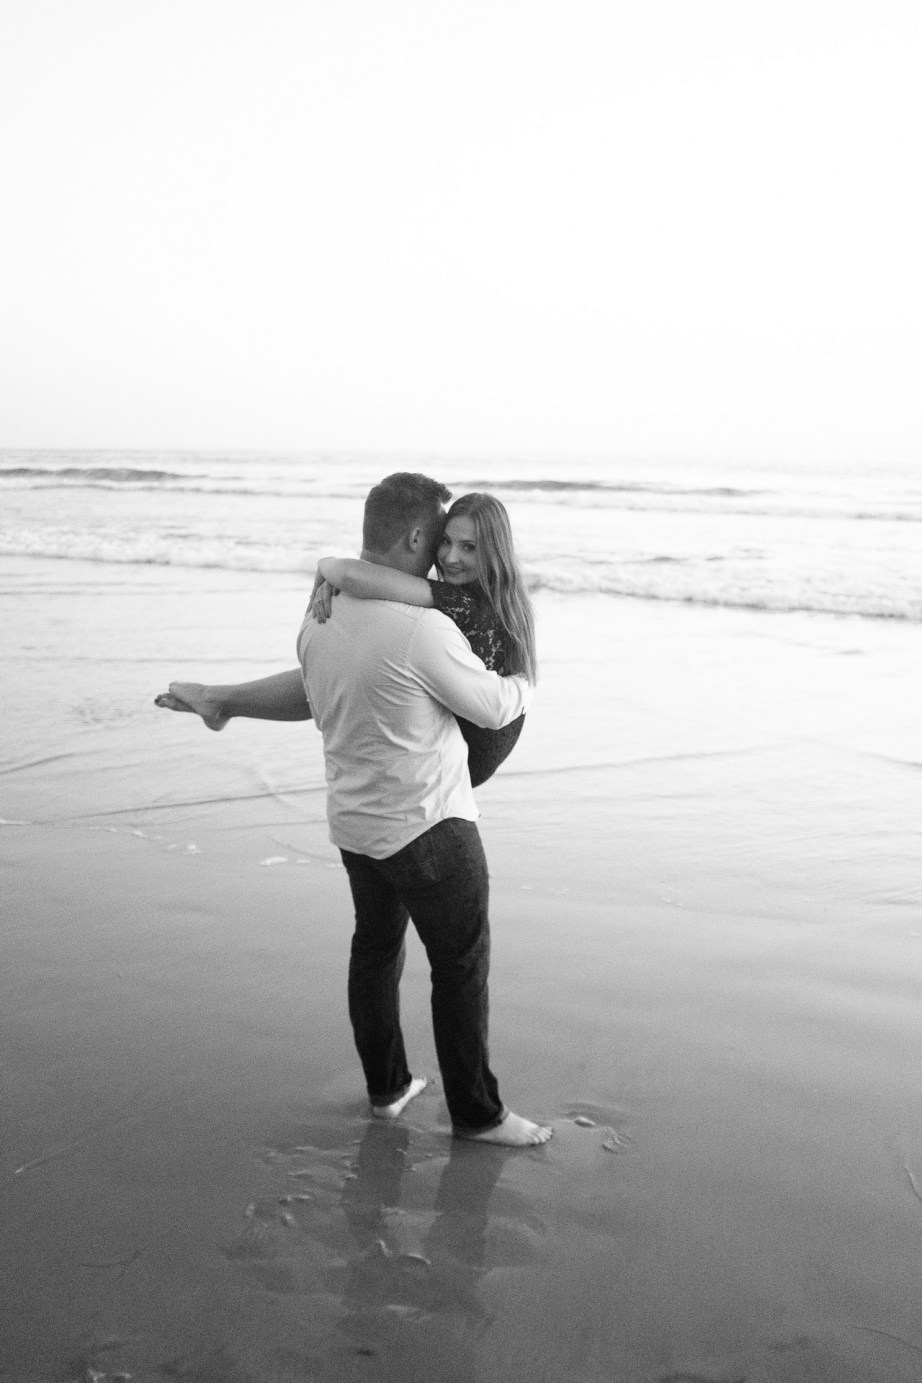 suprise_proposal_engagement_photographer_solana_beach_nicole_caldwell39